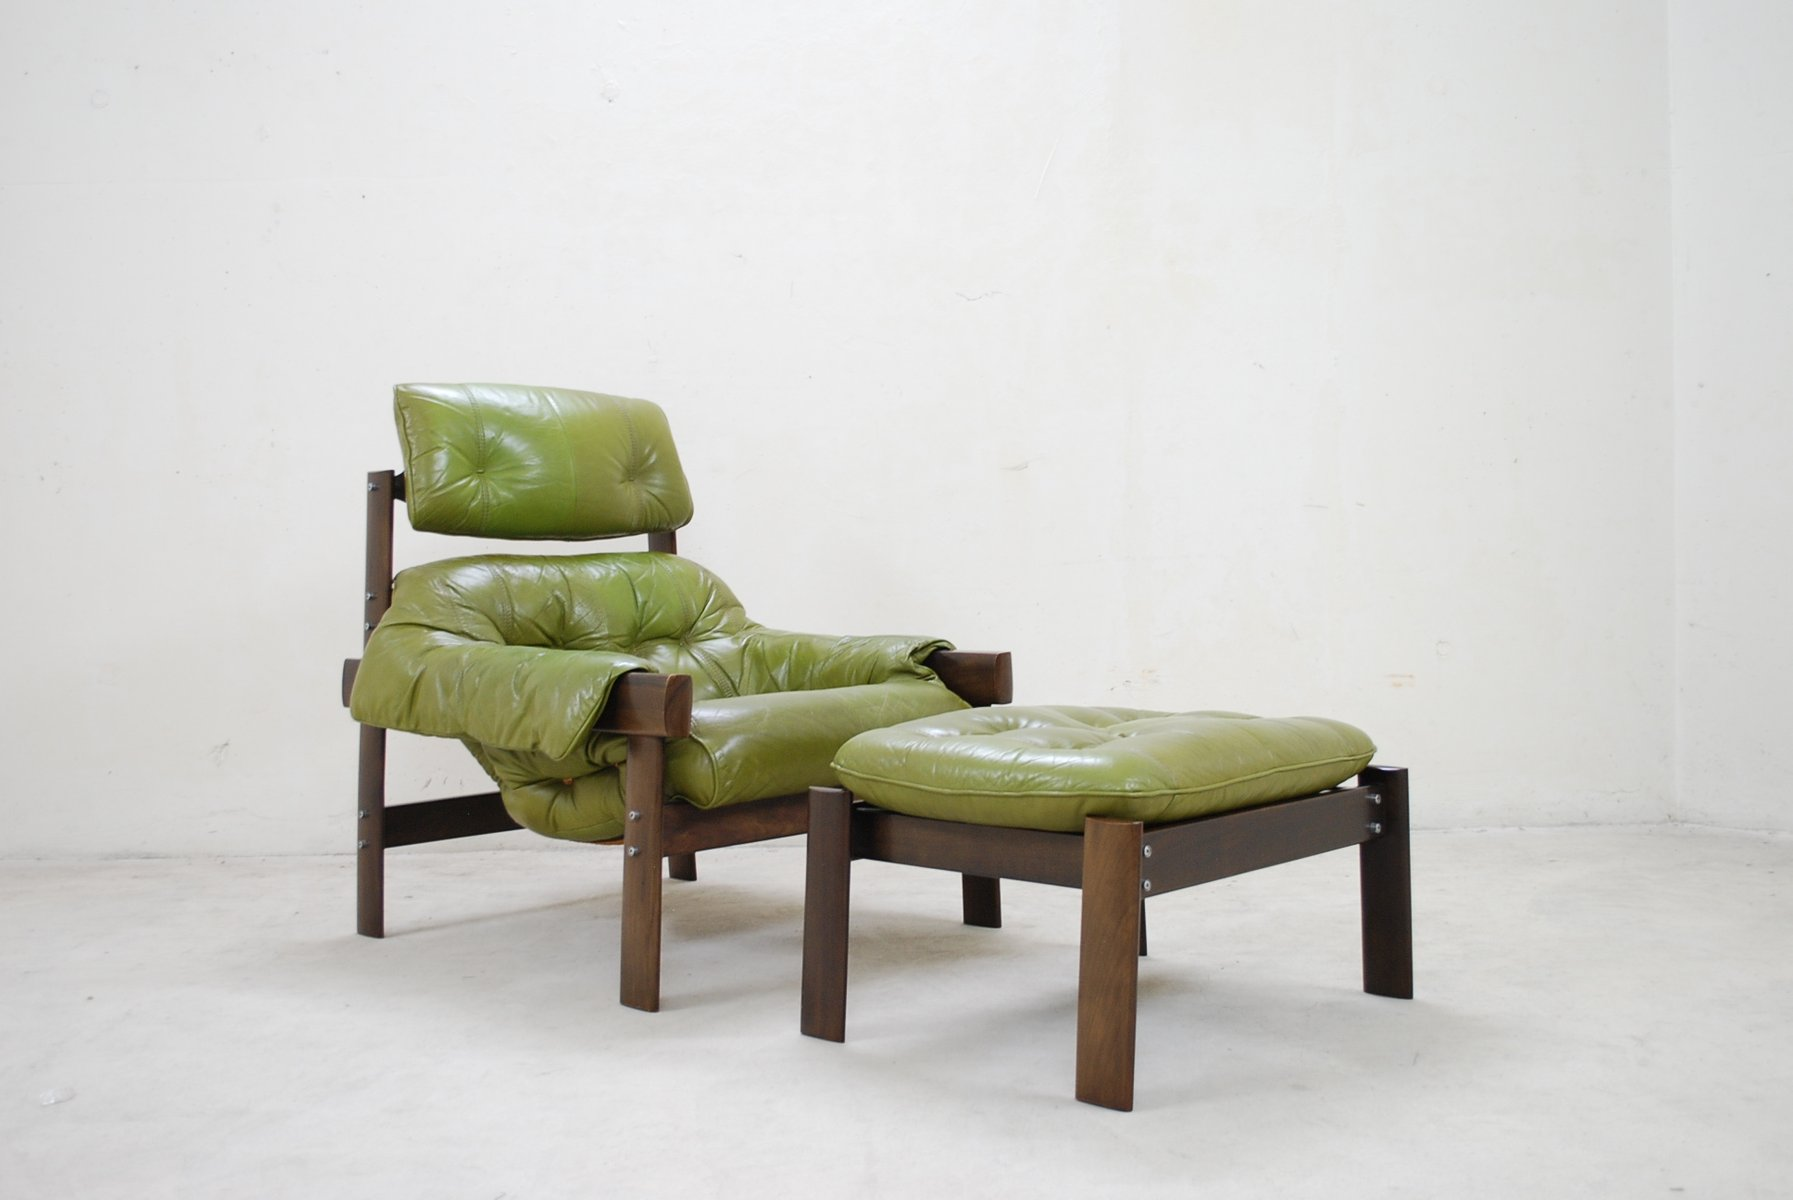 lime green chairs roman lounge chair model mp 041 leather and ottoman